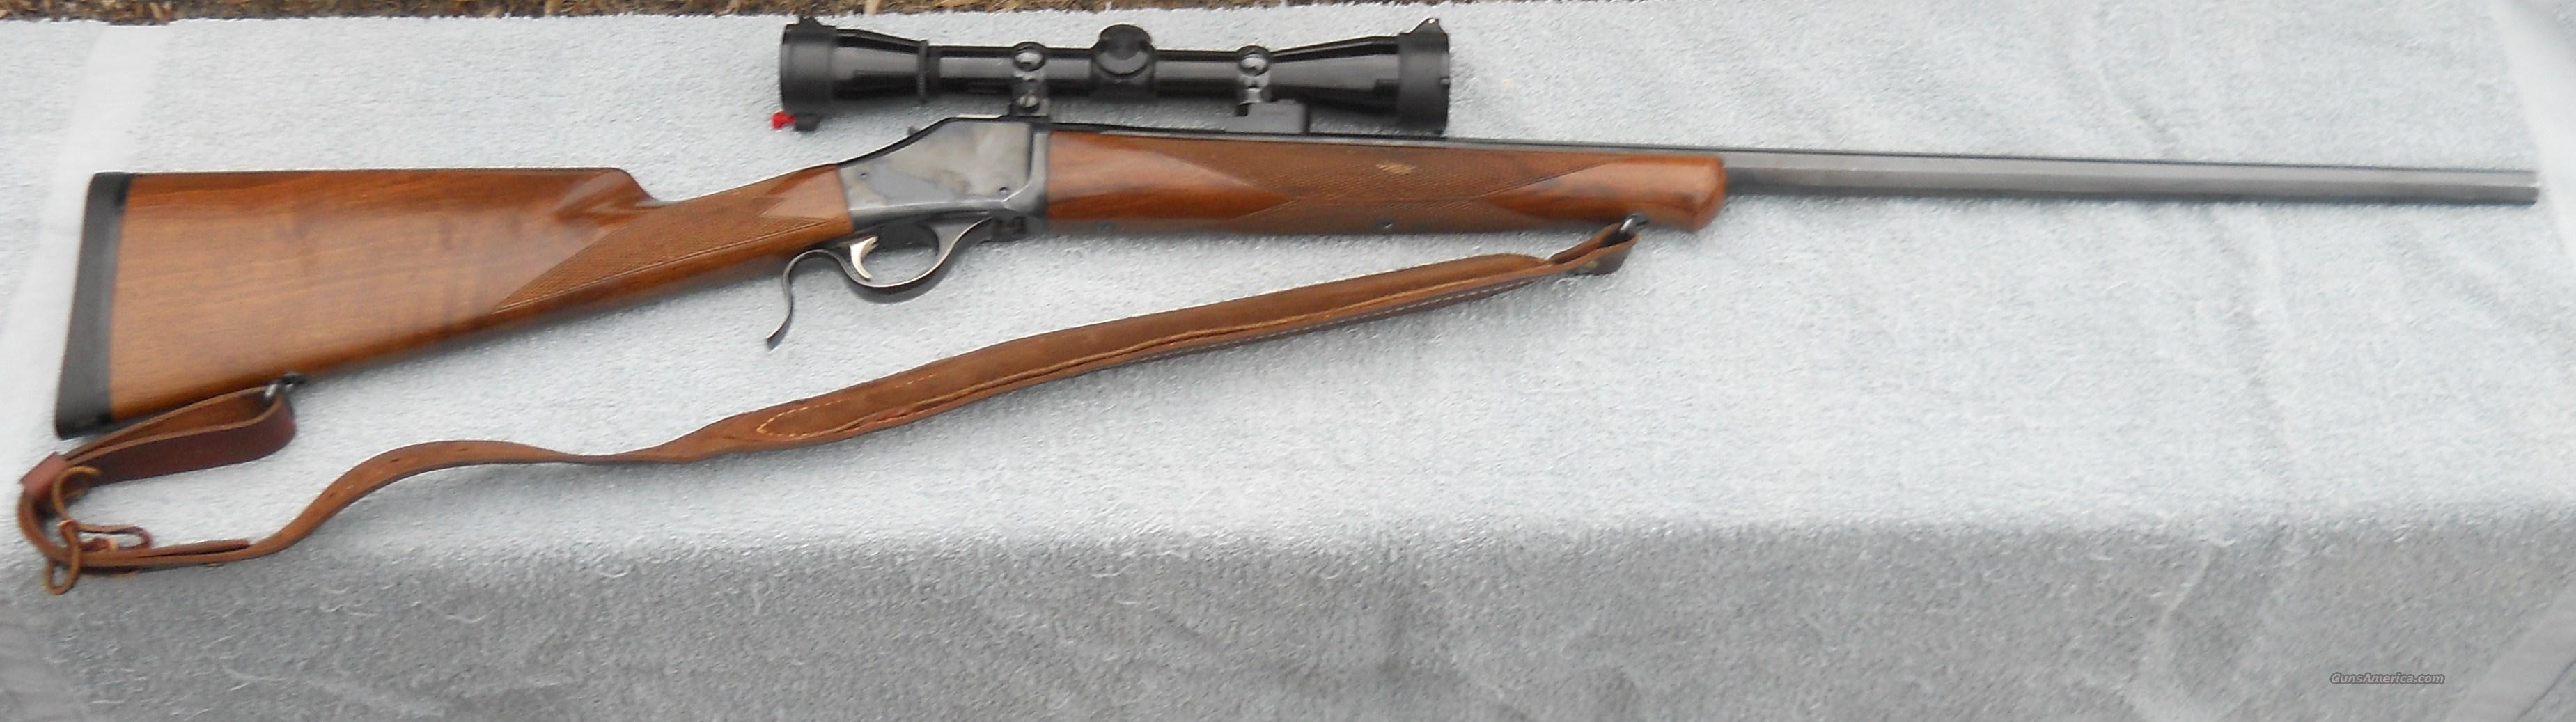 BROWNING MODEL 1885 7MM REMINGTON MAG HIGHWALL W/LEOPOLD SCOPE  Guns > Rifles > Browning Rifles > Lever Action